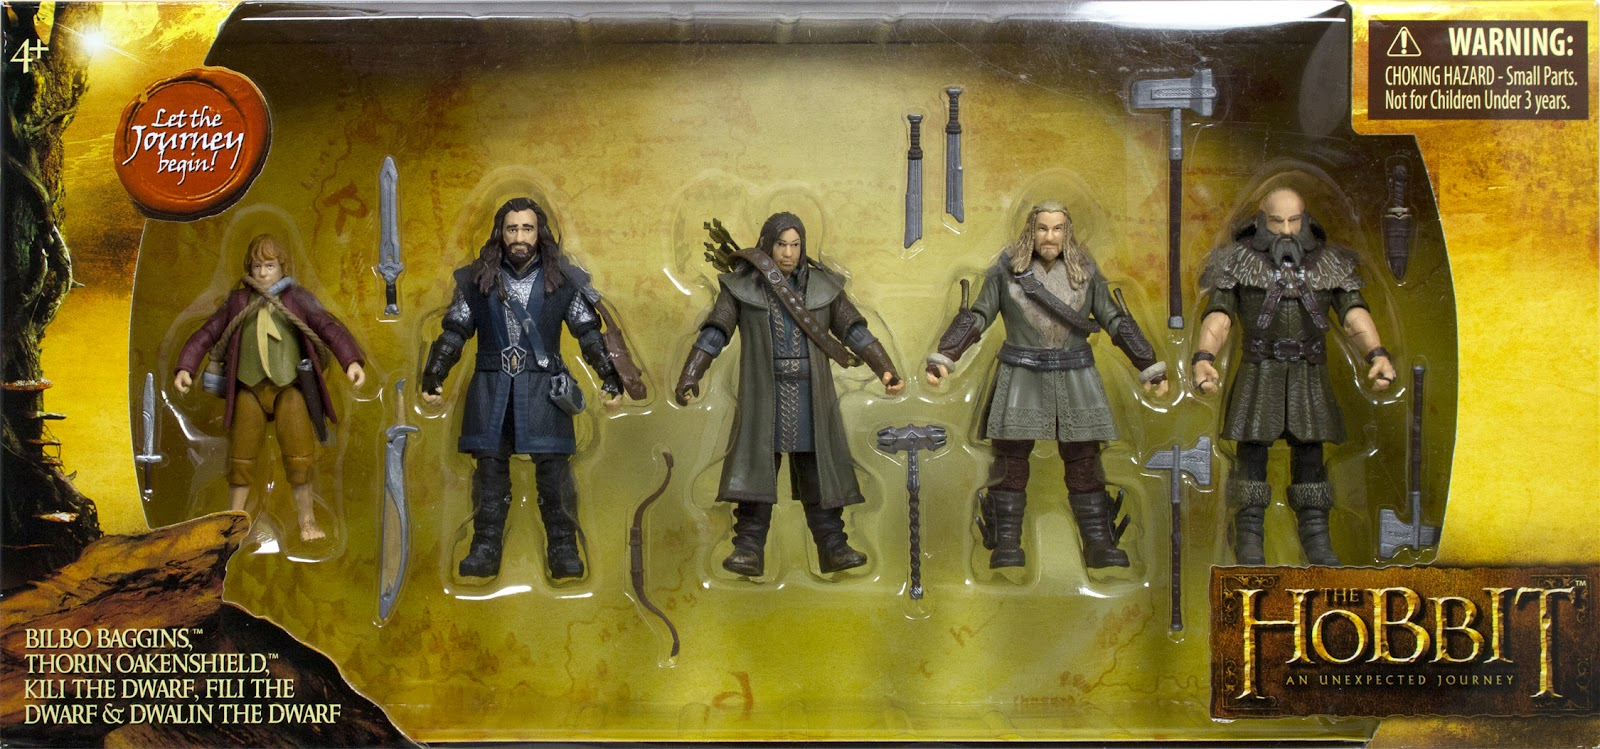 theangryspark pre sales for the hobbit figures starting today